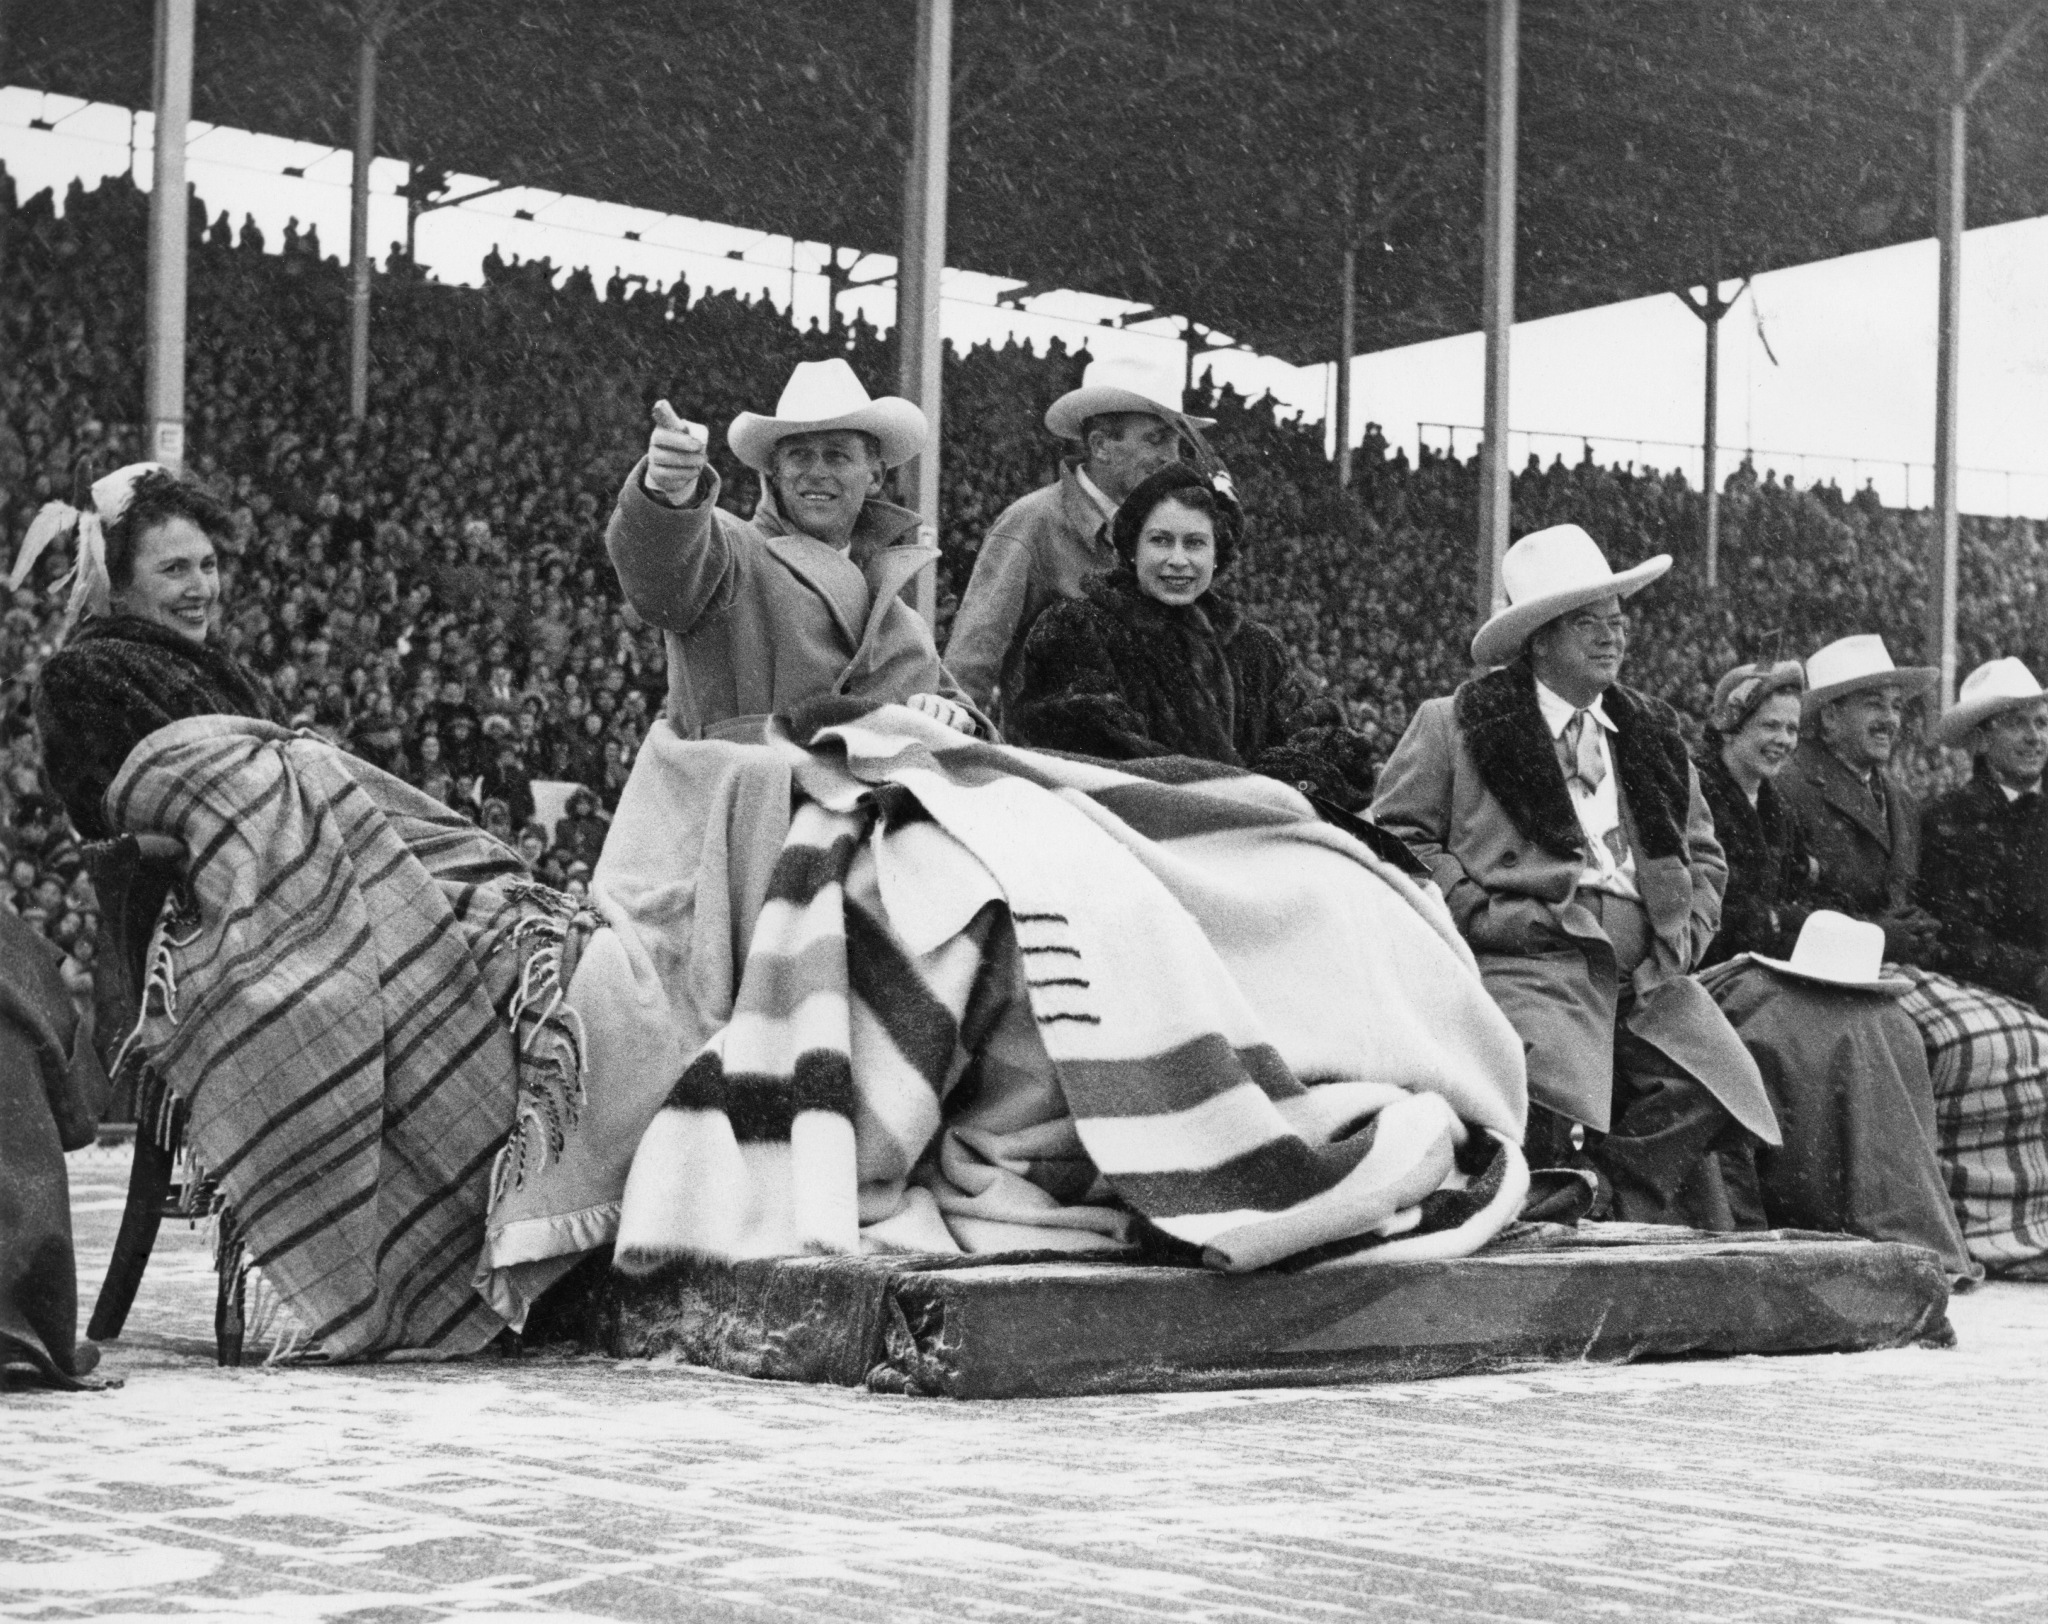 Princess Elizabeth and Prince Philip brave a snowstorm to watch a stampede at Calgary exhibition grounds, Canada, Oct. 24, 1951. Next to the Princess is Donald Hugh Mackay, Mayor of Calgary. The Princess is wearing a mink fur coat, a wedding present from Canada.